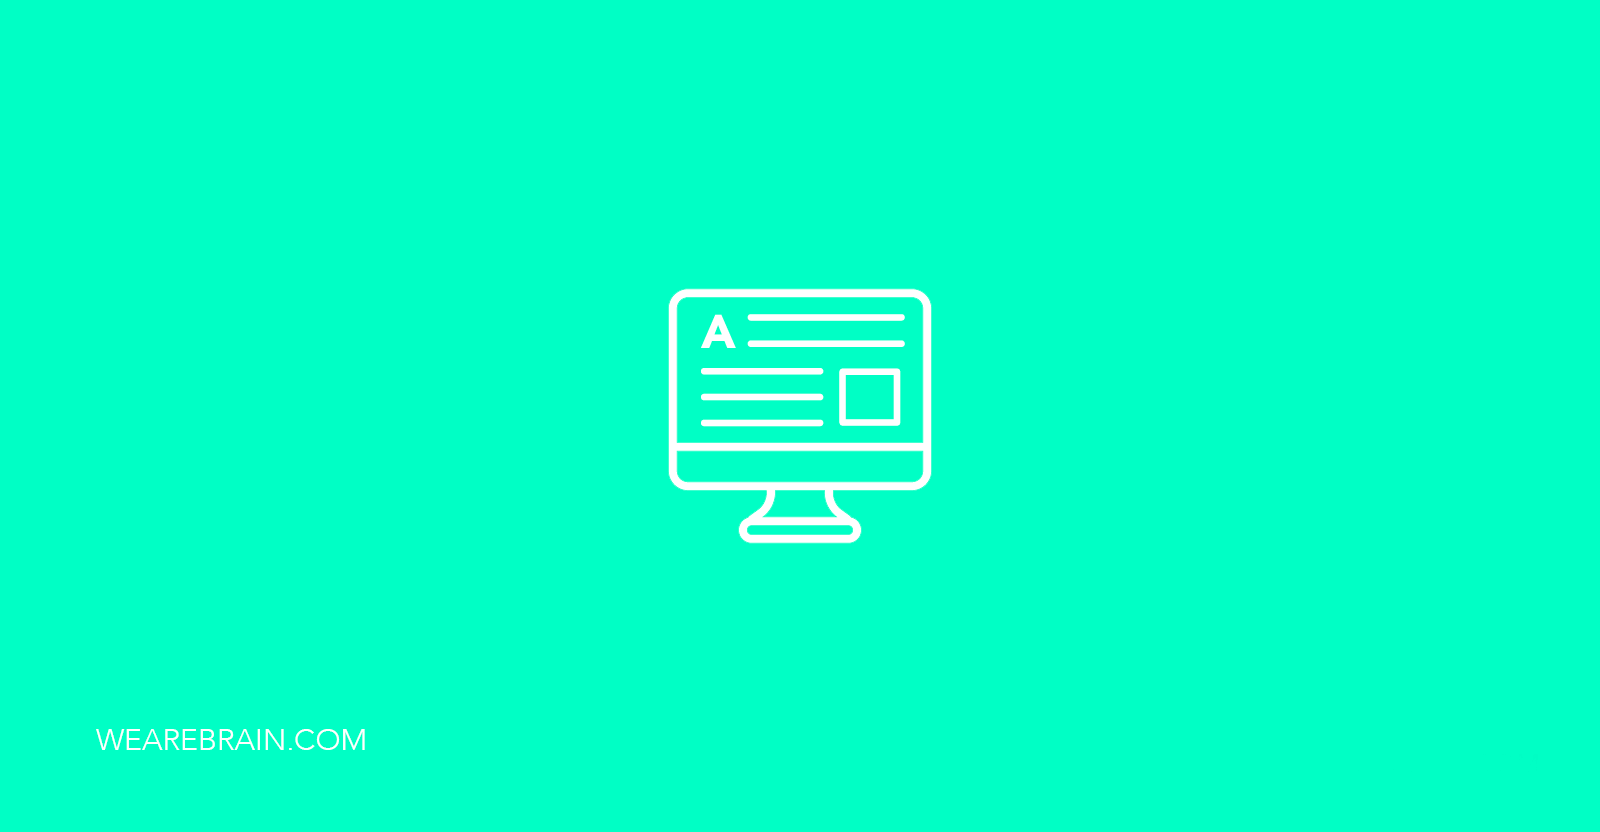 icon of a computer screen